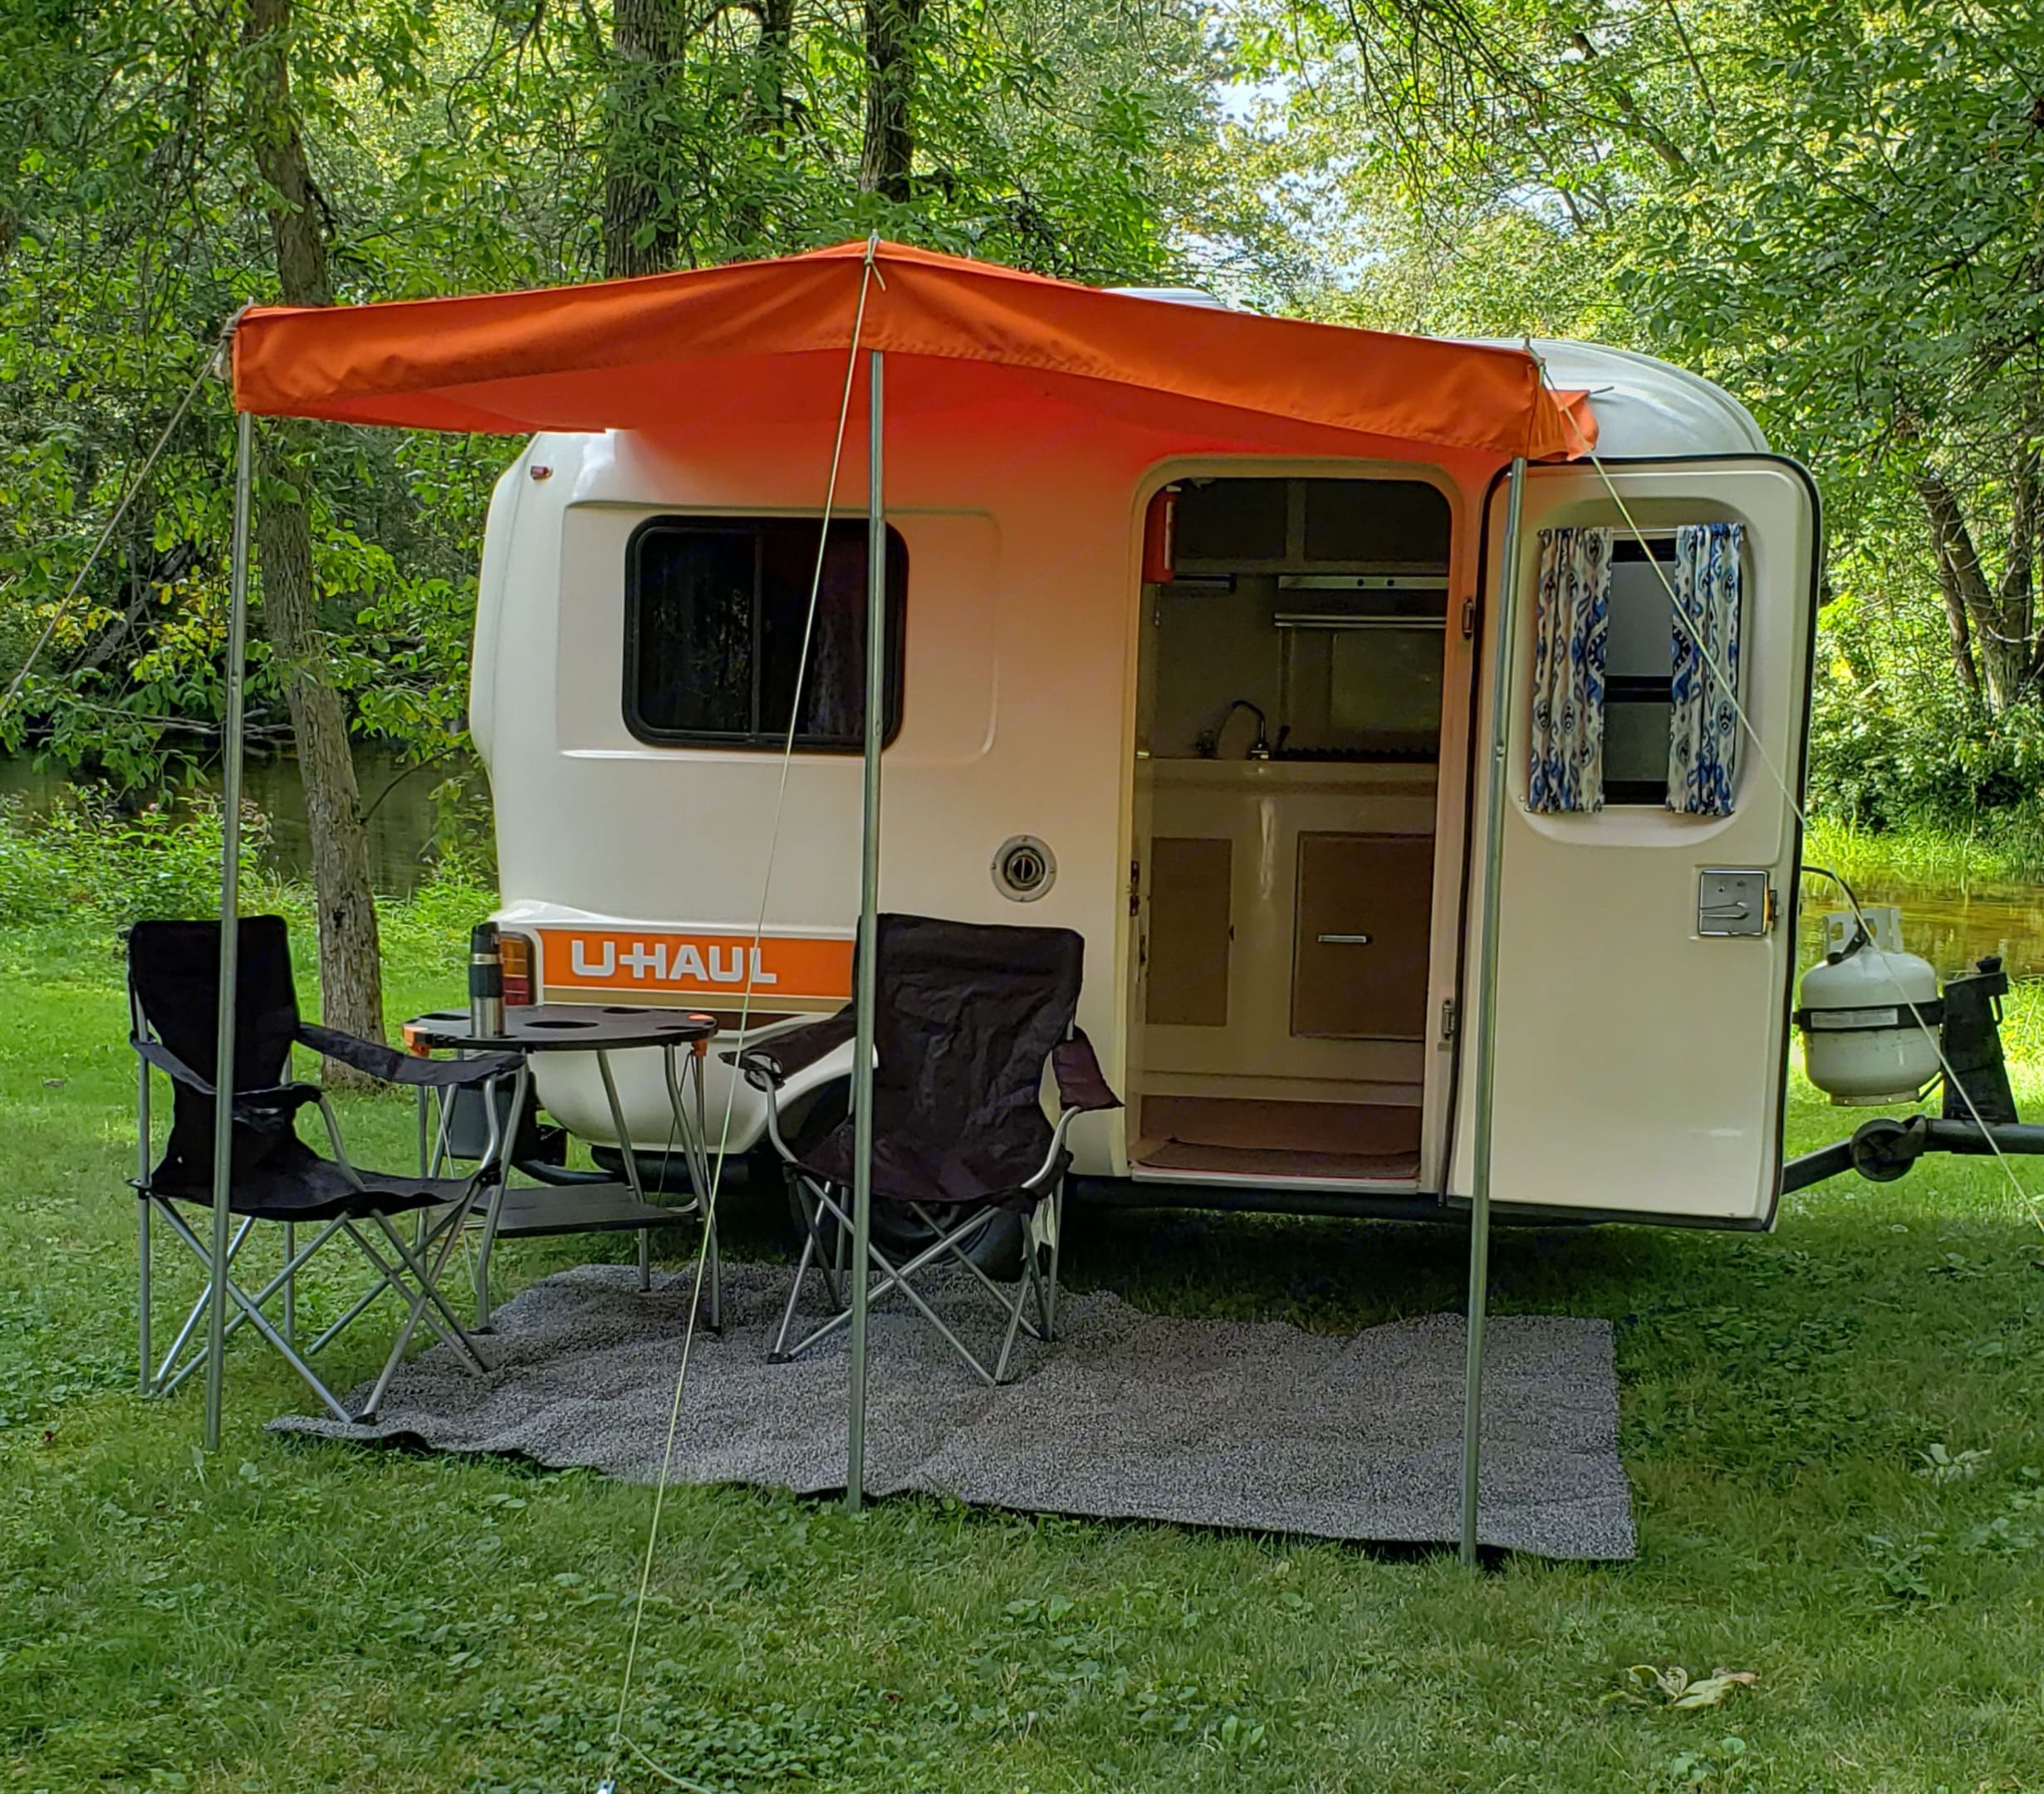 Chill out under the awning. U-Haul CT13 1984